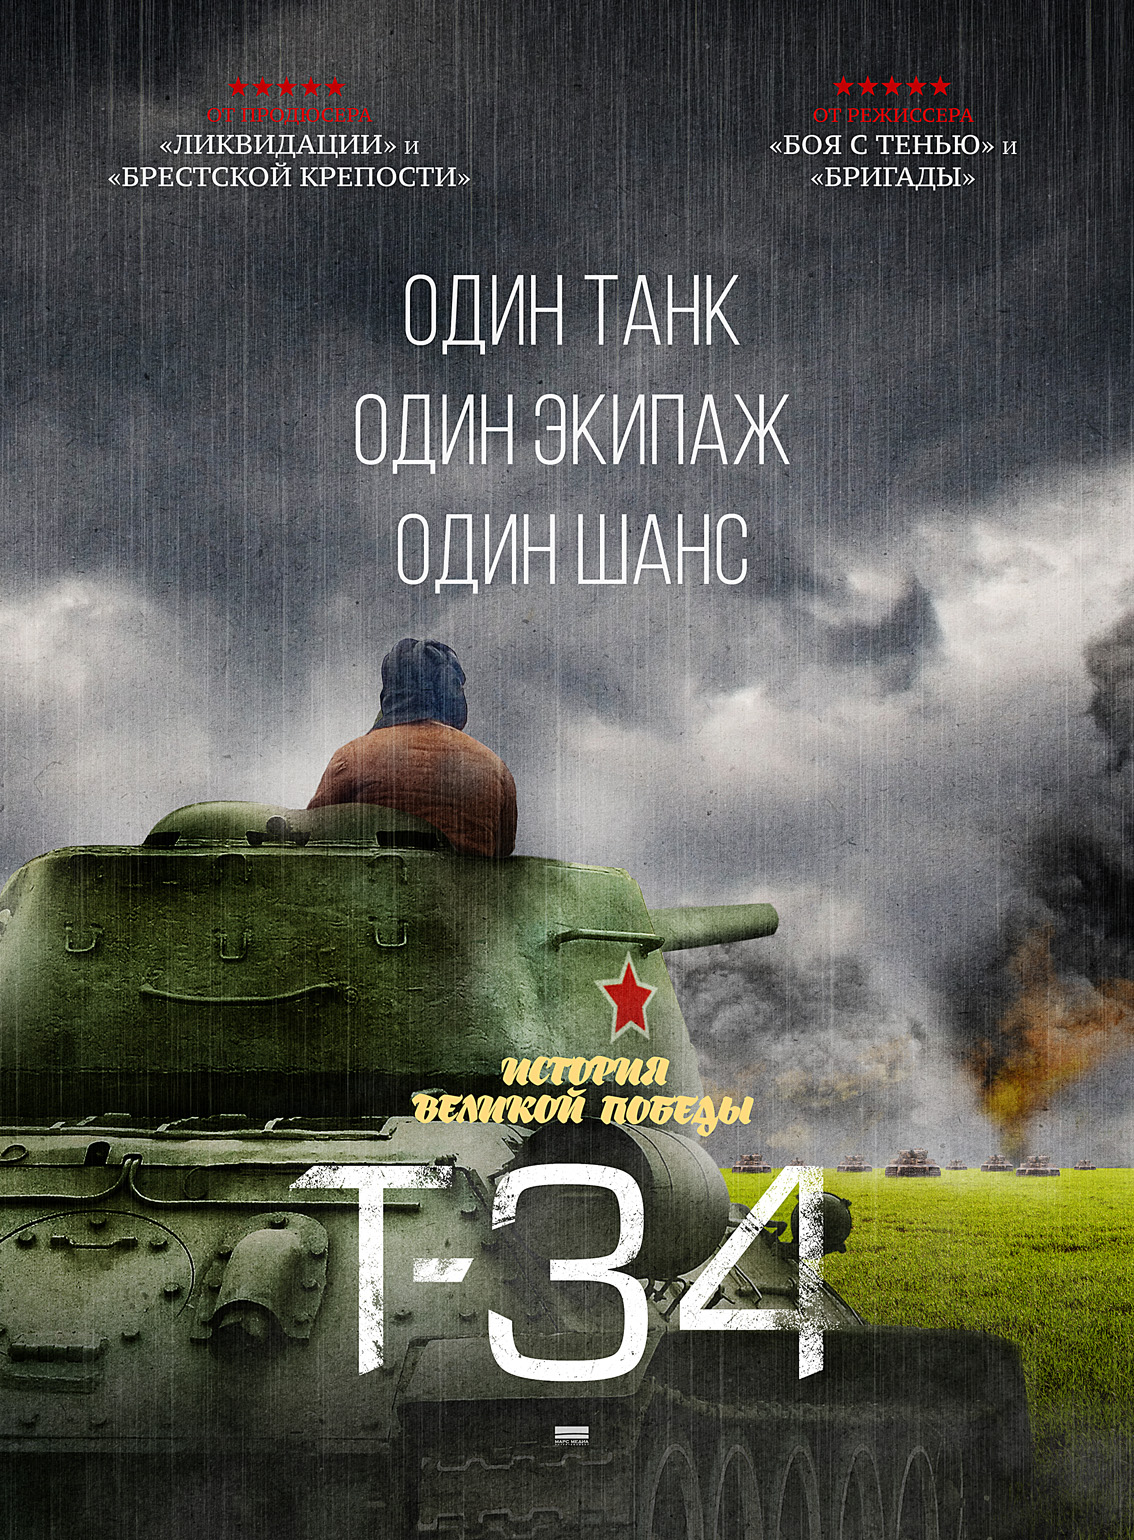 T-34 - the film of 2018 22